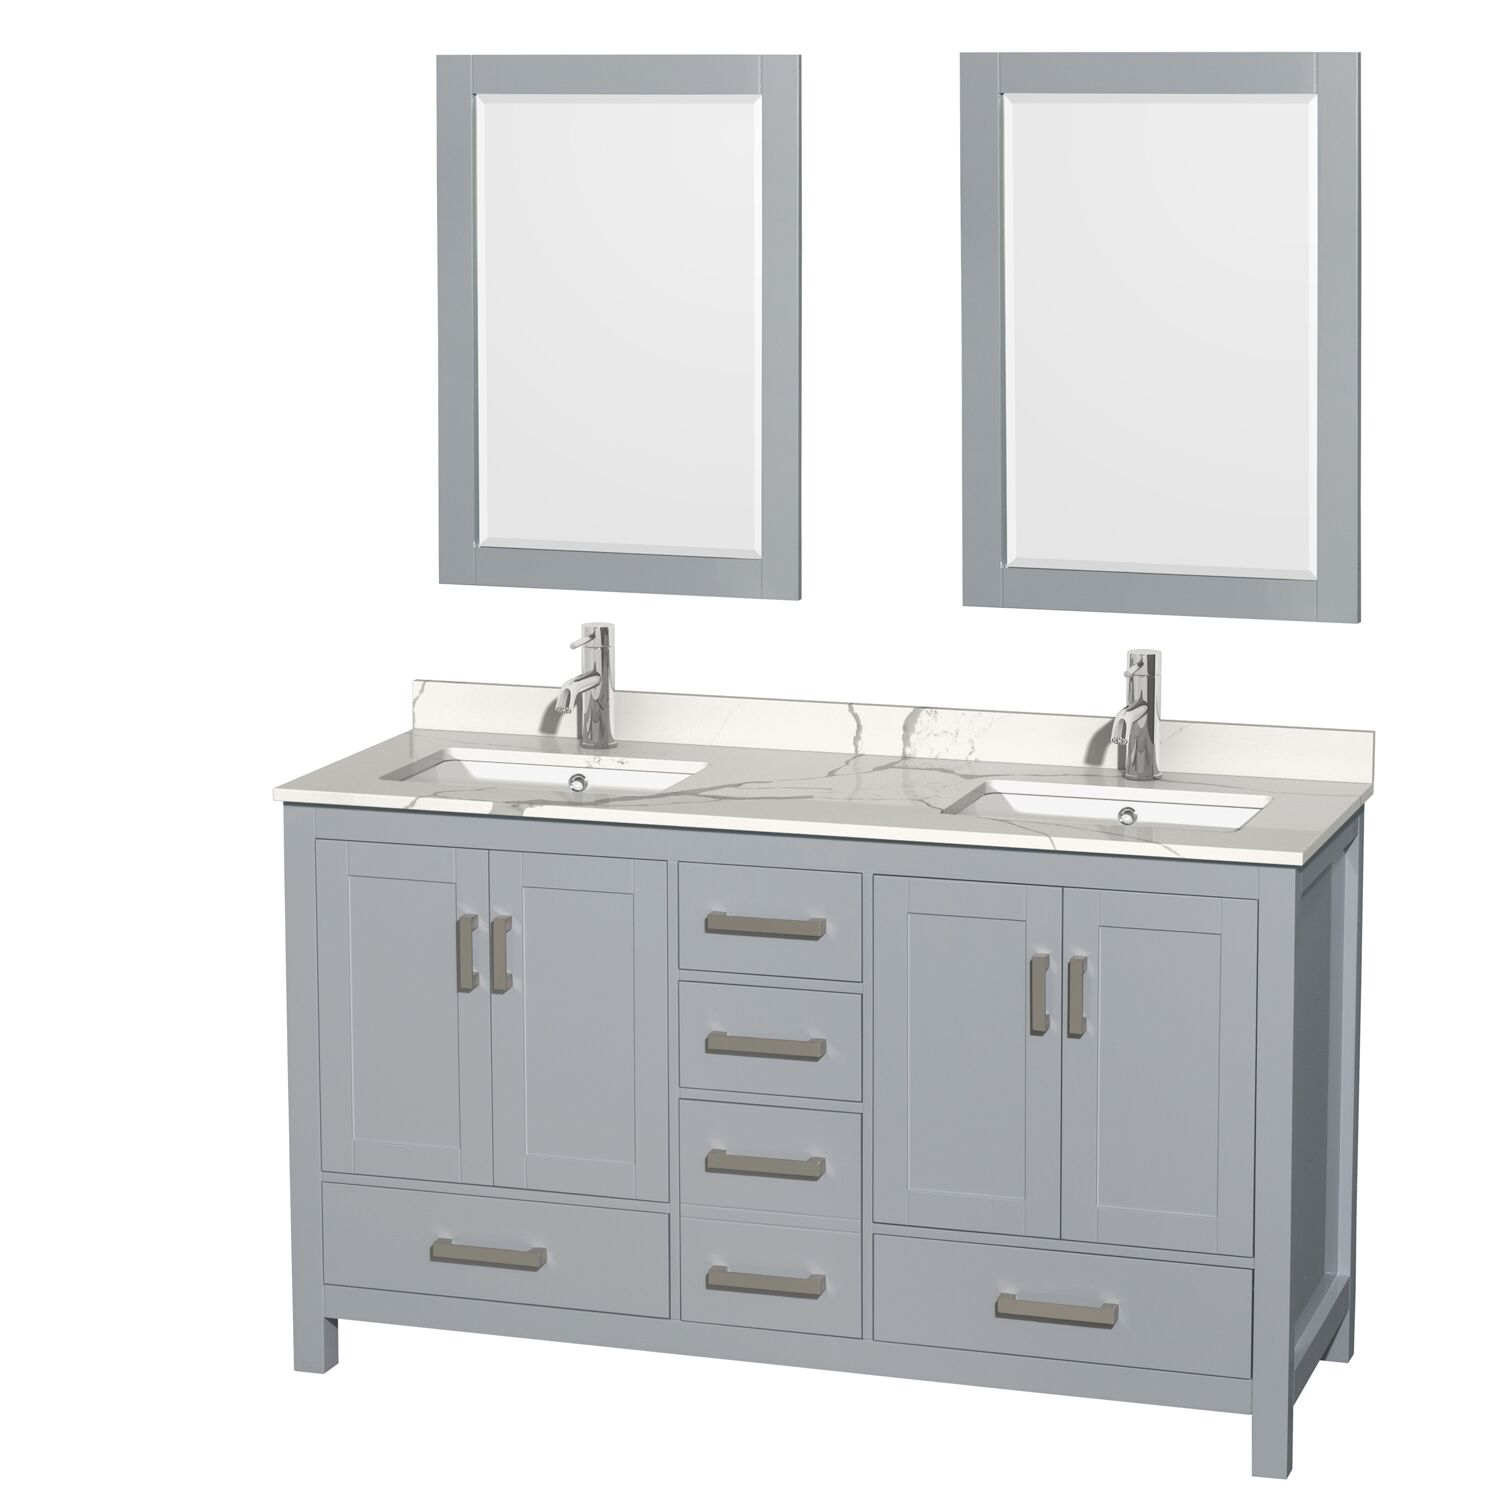 "60"" Double Bathroom Vanity with Color, Countertop, Mirror and Medicine Cabinet Options"